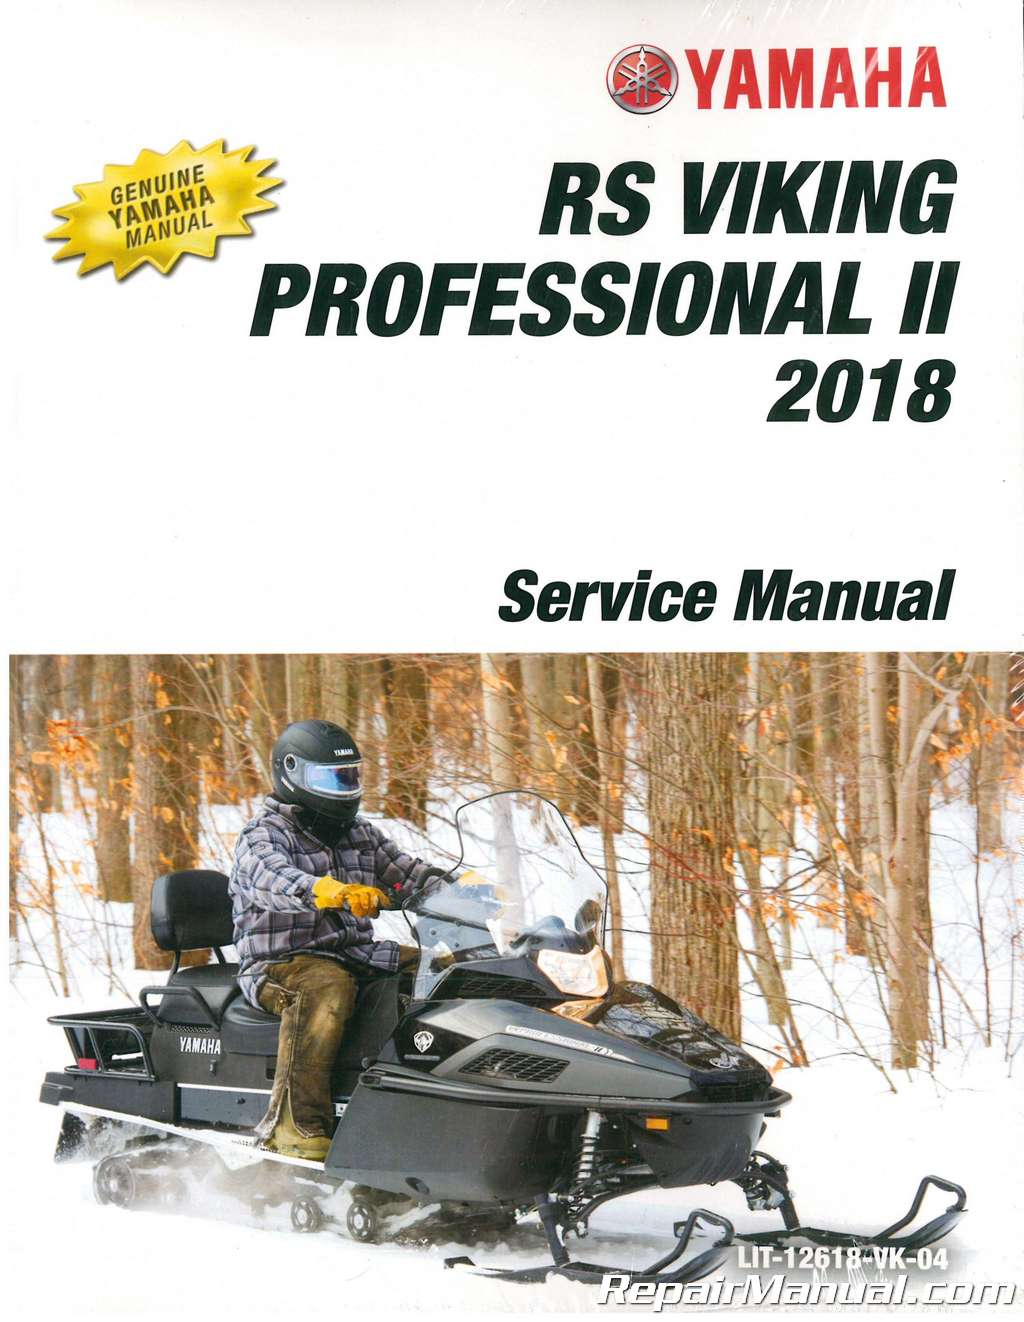 Vkpro Blue further  as well  additionally Eng High Performance as well Yamaha Vk Professional Snowmobile Service Manual. on yamaha vk professional parts